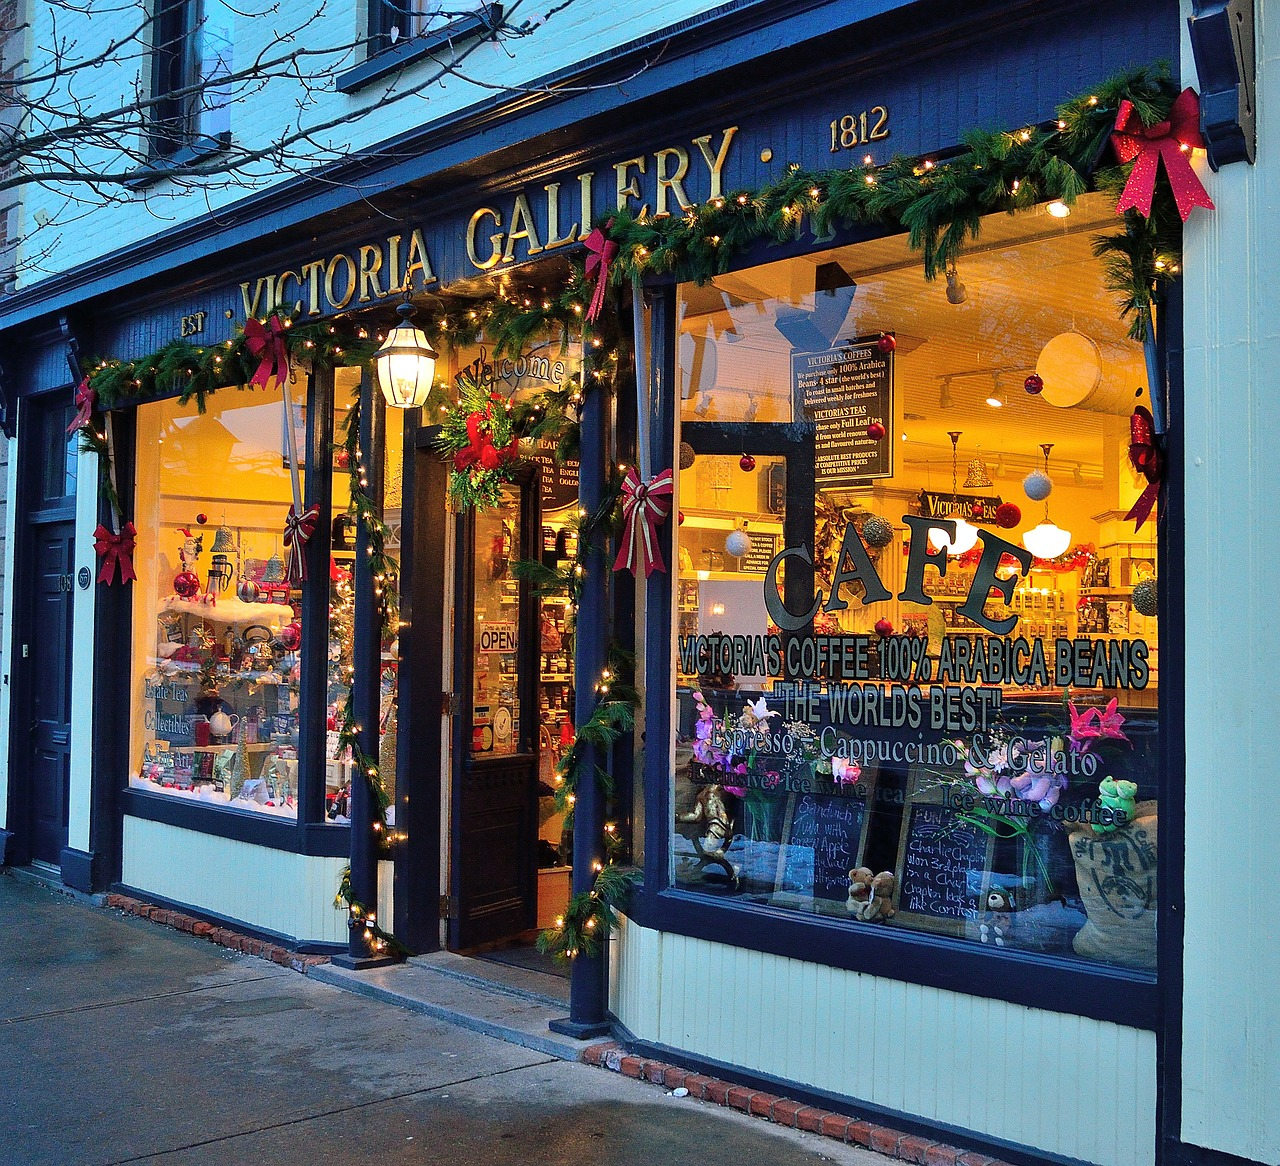 Window Replacement and Updates to Business Storefronts